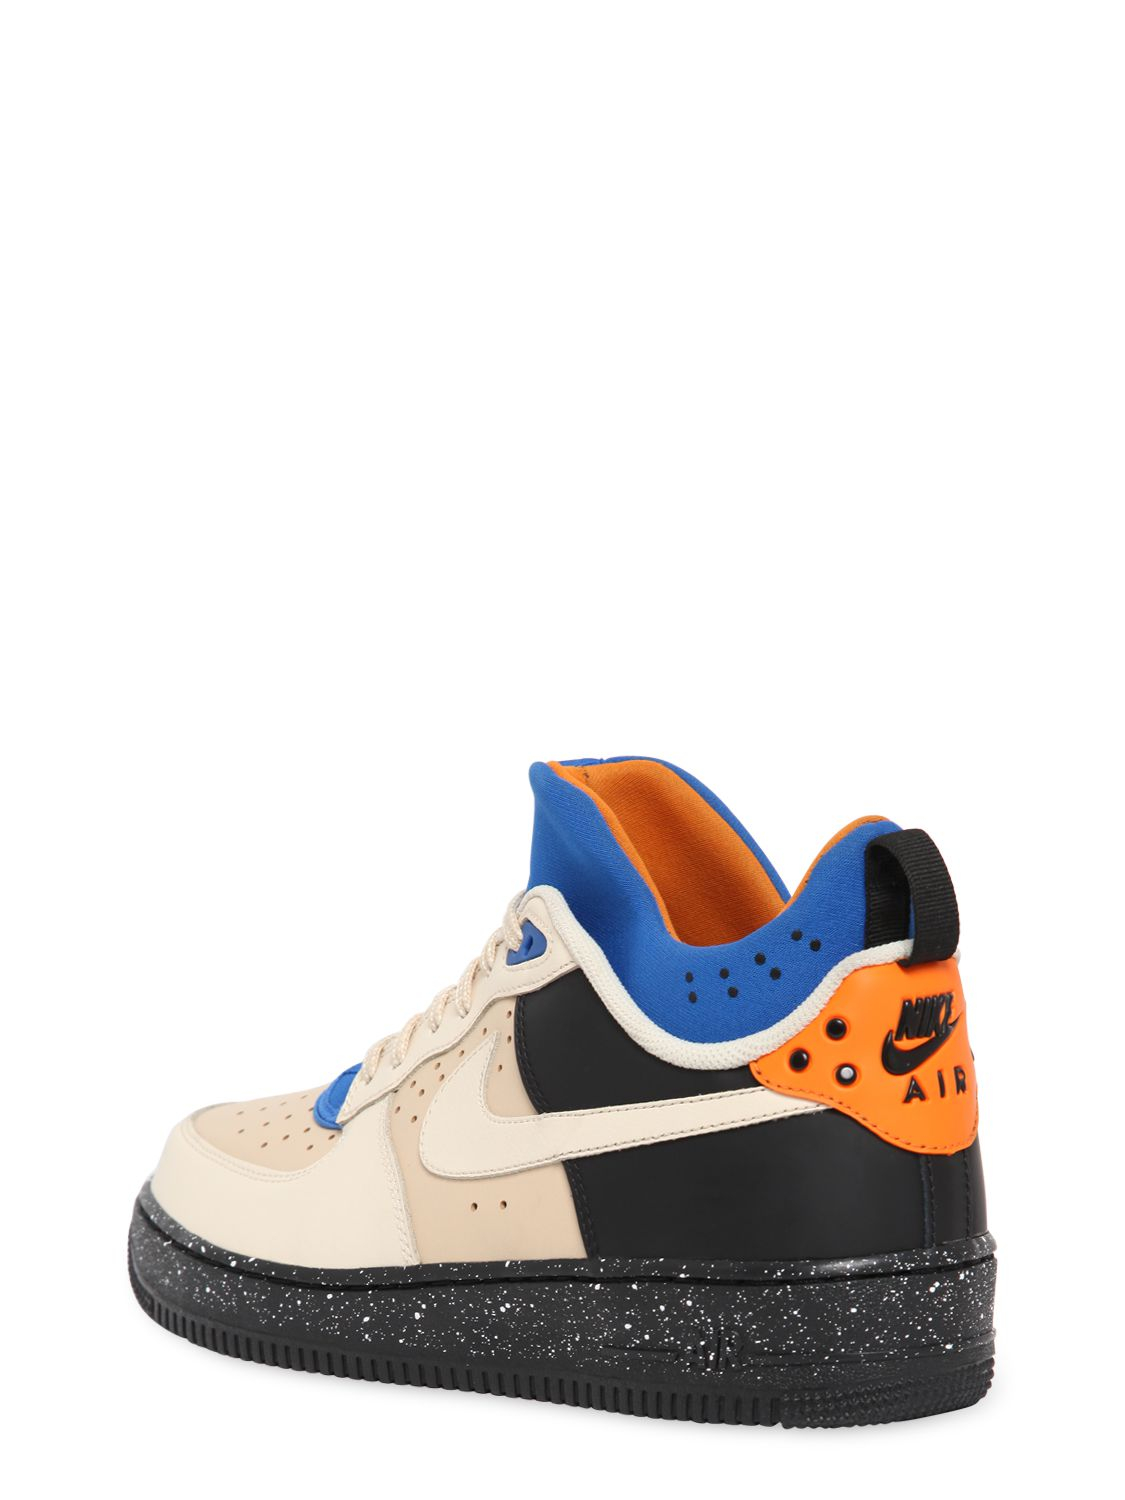 lyst nike air force 1 cmft mowabb sneakers in natural. Black Bedroom Furniture Sets. Home Design Ideas